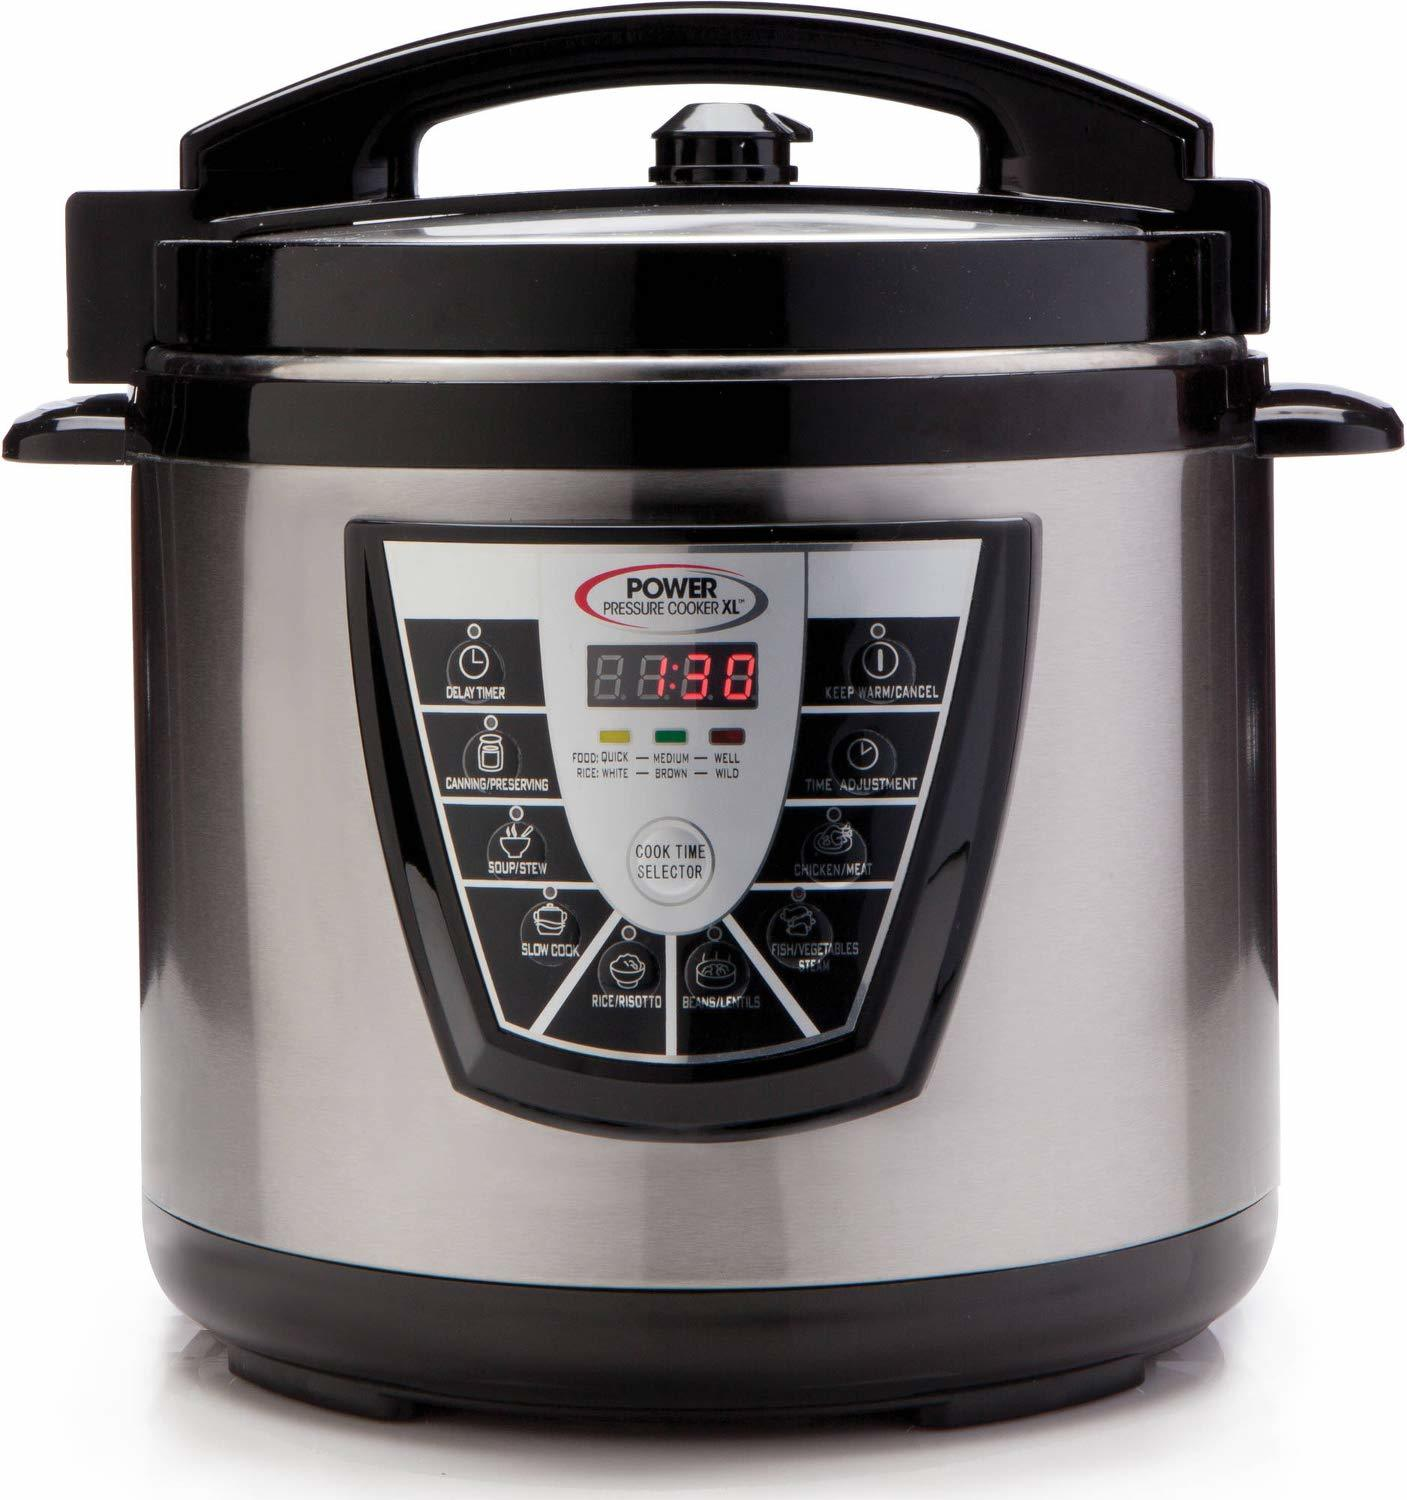 power pressure cooker xl 10 quart